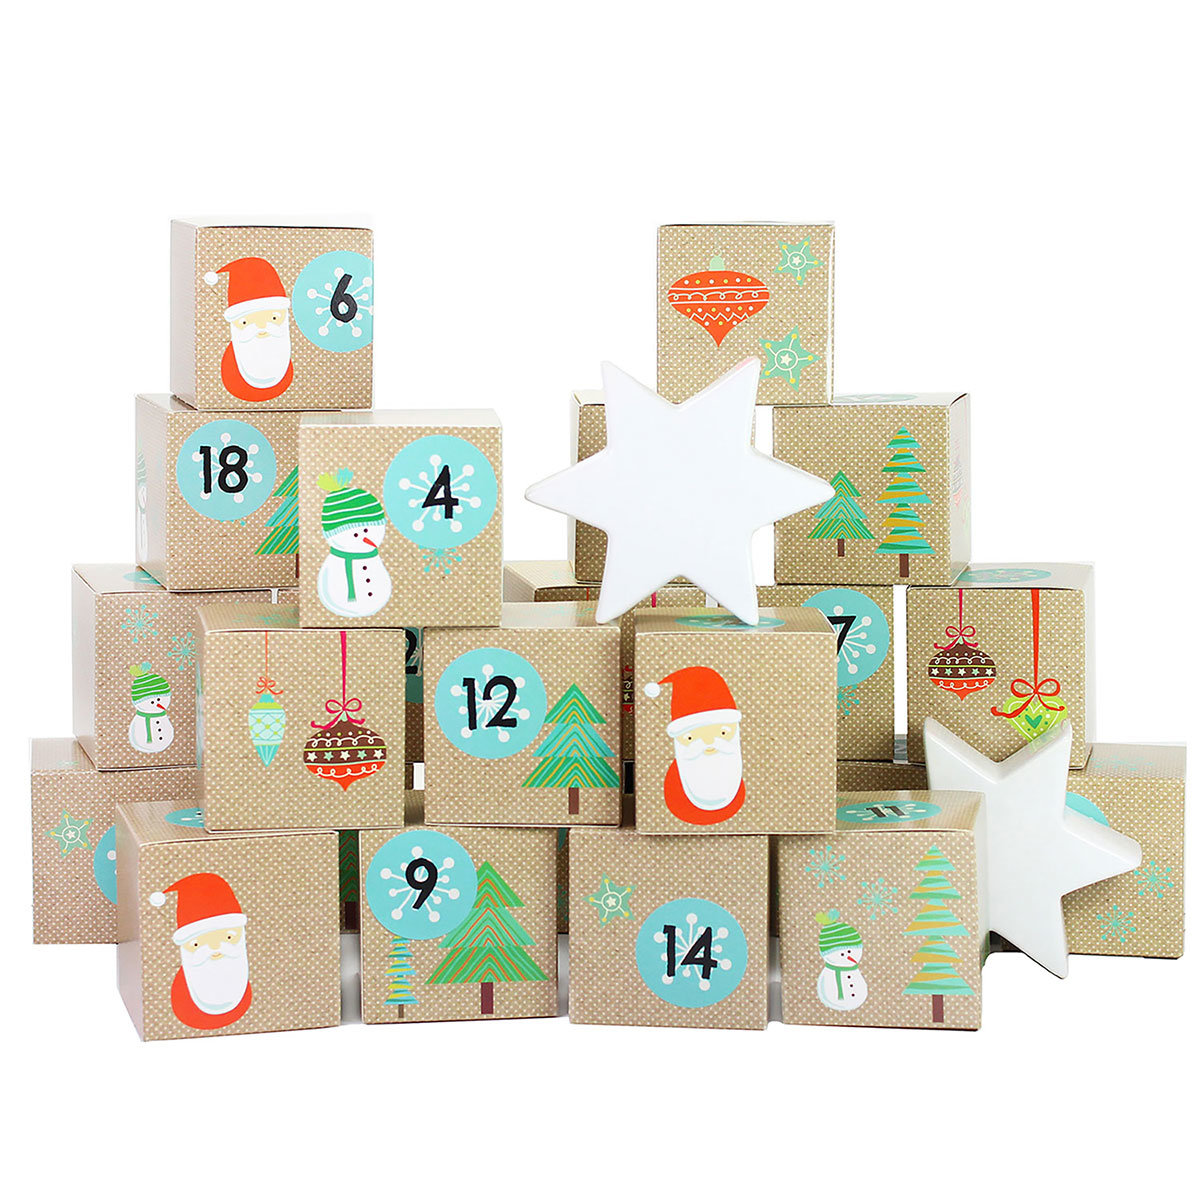 diy adventskalender kisten set motiv weihnachtsmann 24 bunte schachteln zum aufstellen und. Black Bedroom Furniture Sets. Home Design Ideas